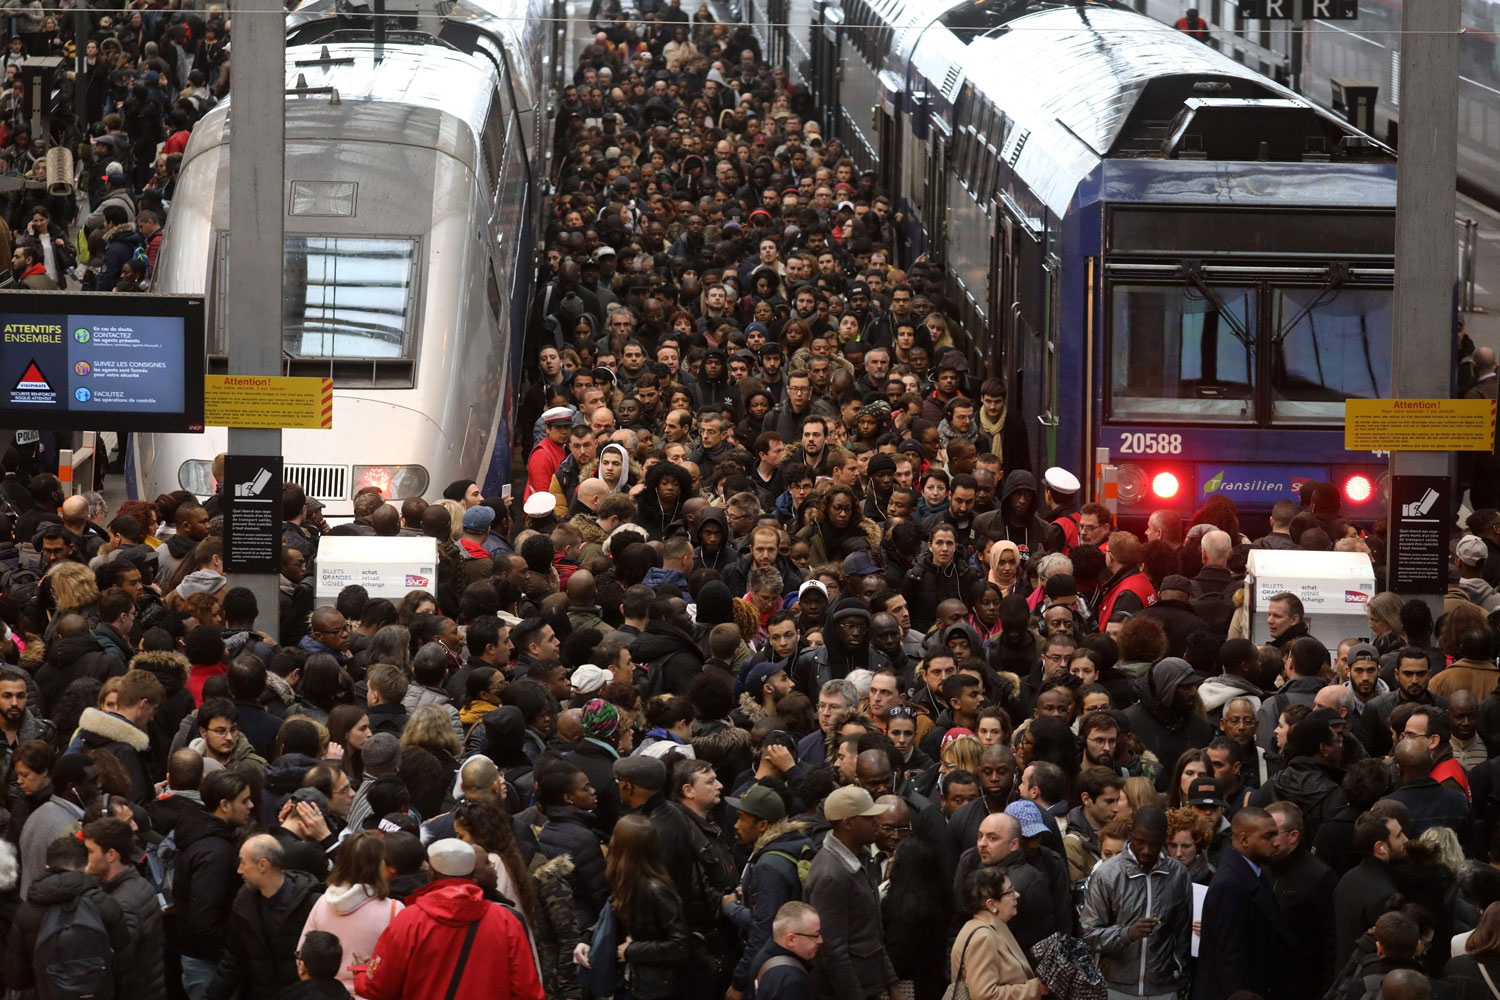 Commuters stand on a crowded platform of the Gare de Lyon railway station on April 3 in Paris on the first day of a two-day strike. The rolling rail strikes, set to last until June 28, are seen as the biggest challenge yet to President Emmanuel Macron's sweeping economic restructuring goals. (Ludovic Marin/AFP/Getty Images)